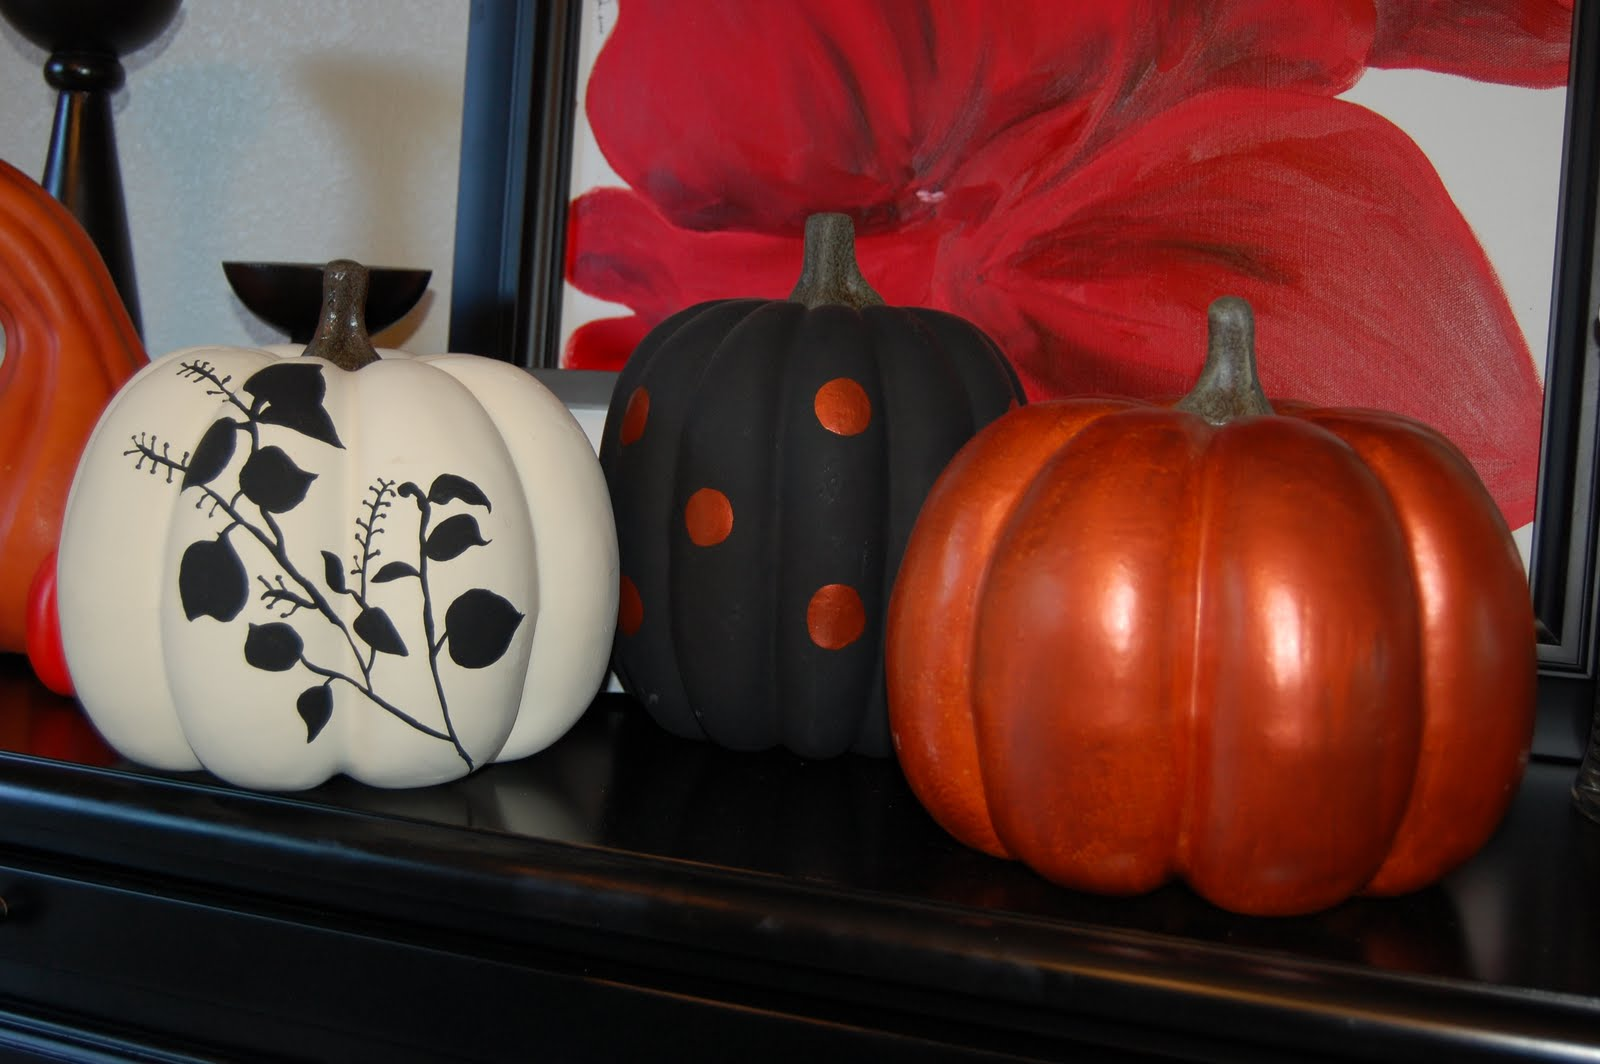 Life with the welge 39 s painted pumpkin ideas - Cute pumpkin painting ideas ...